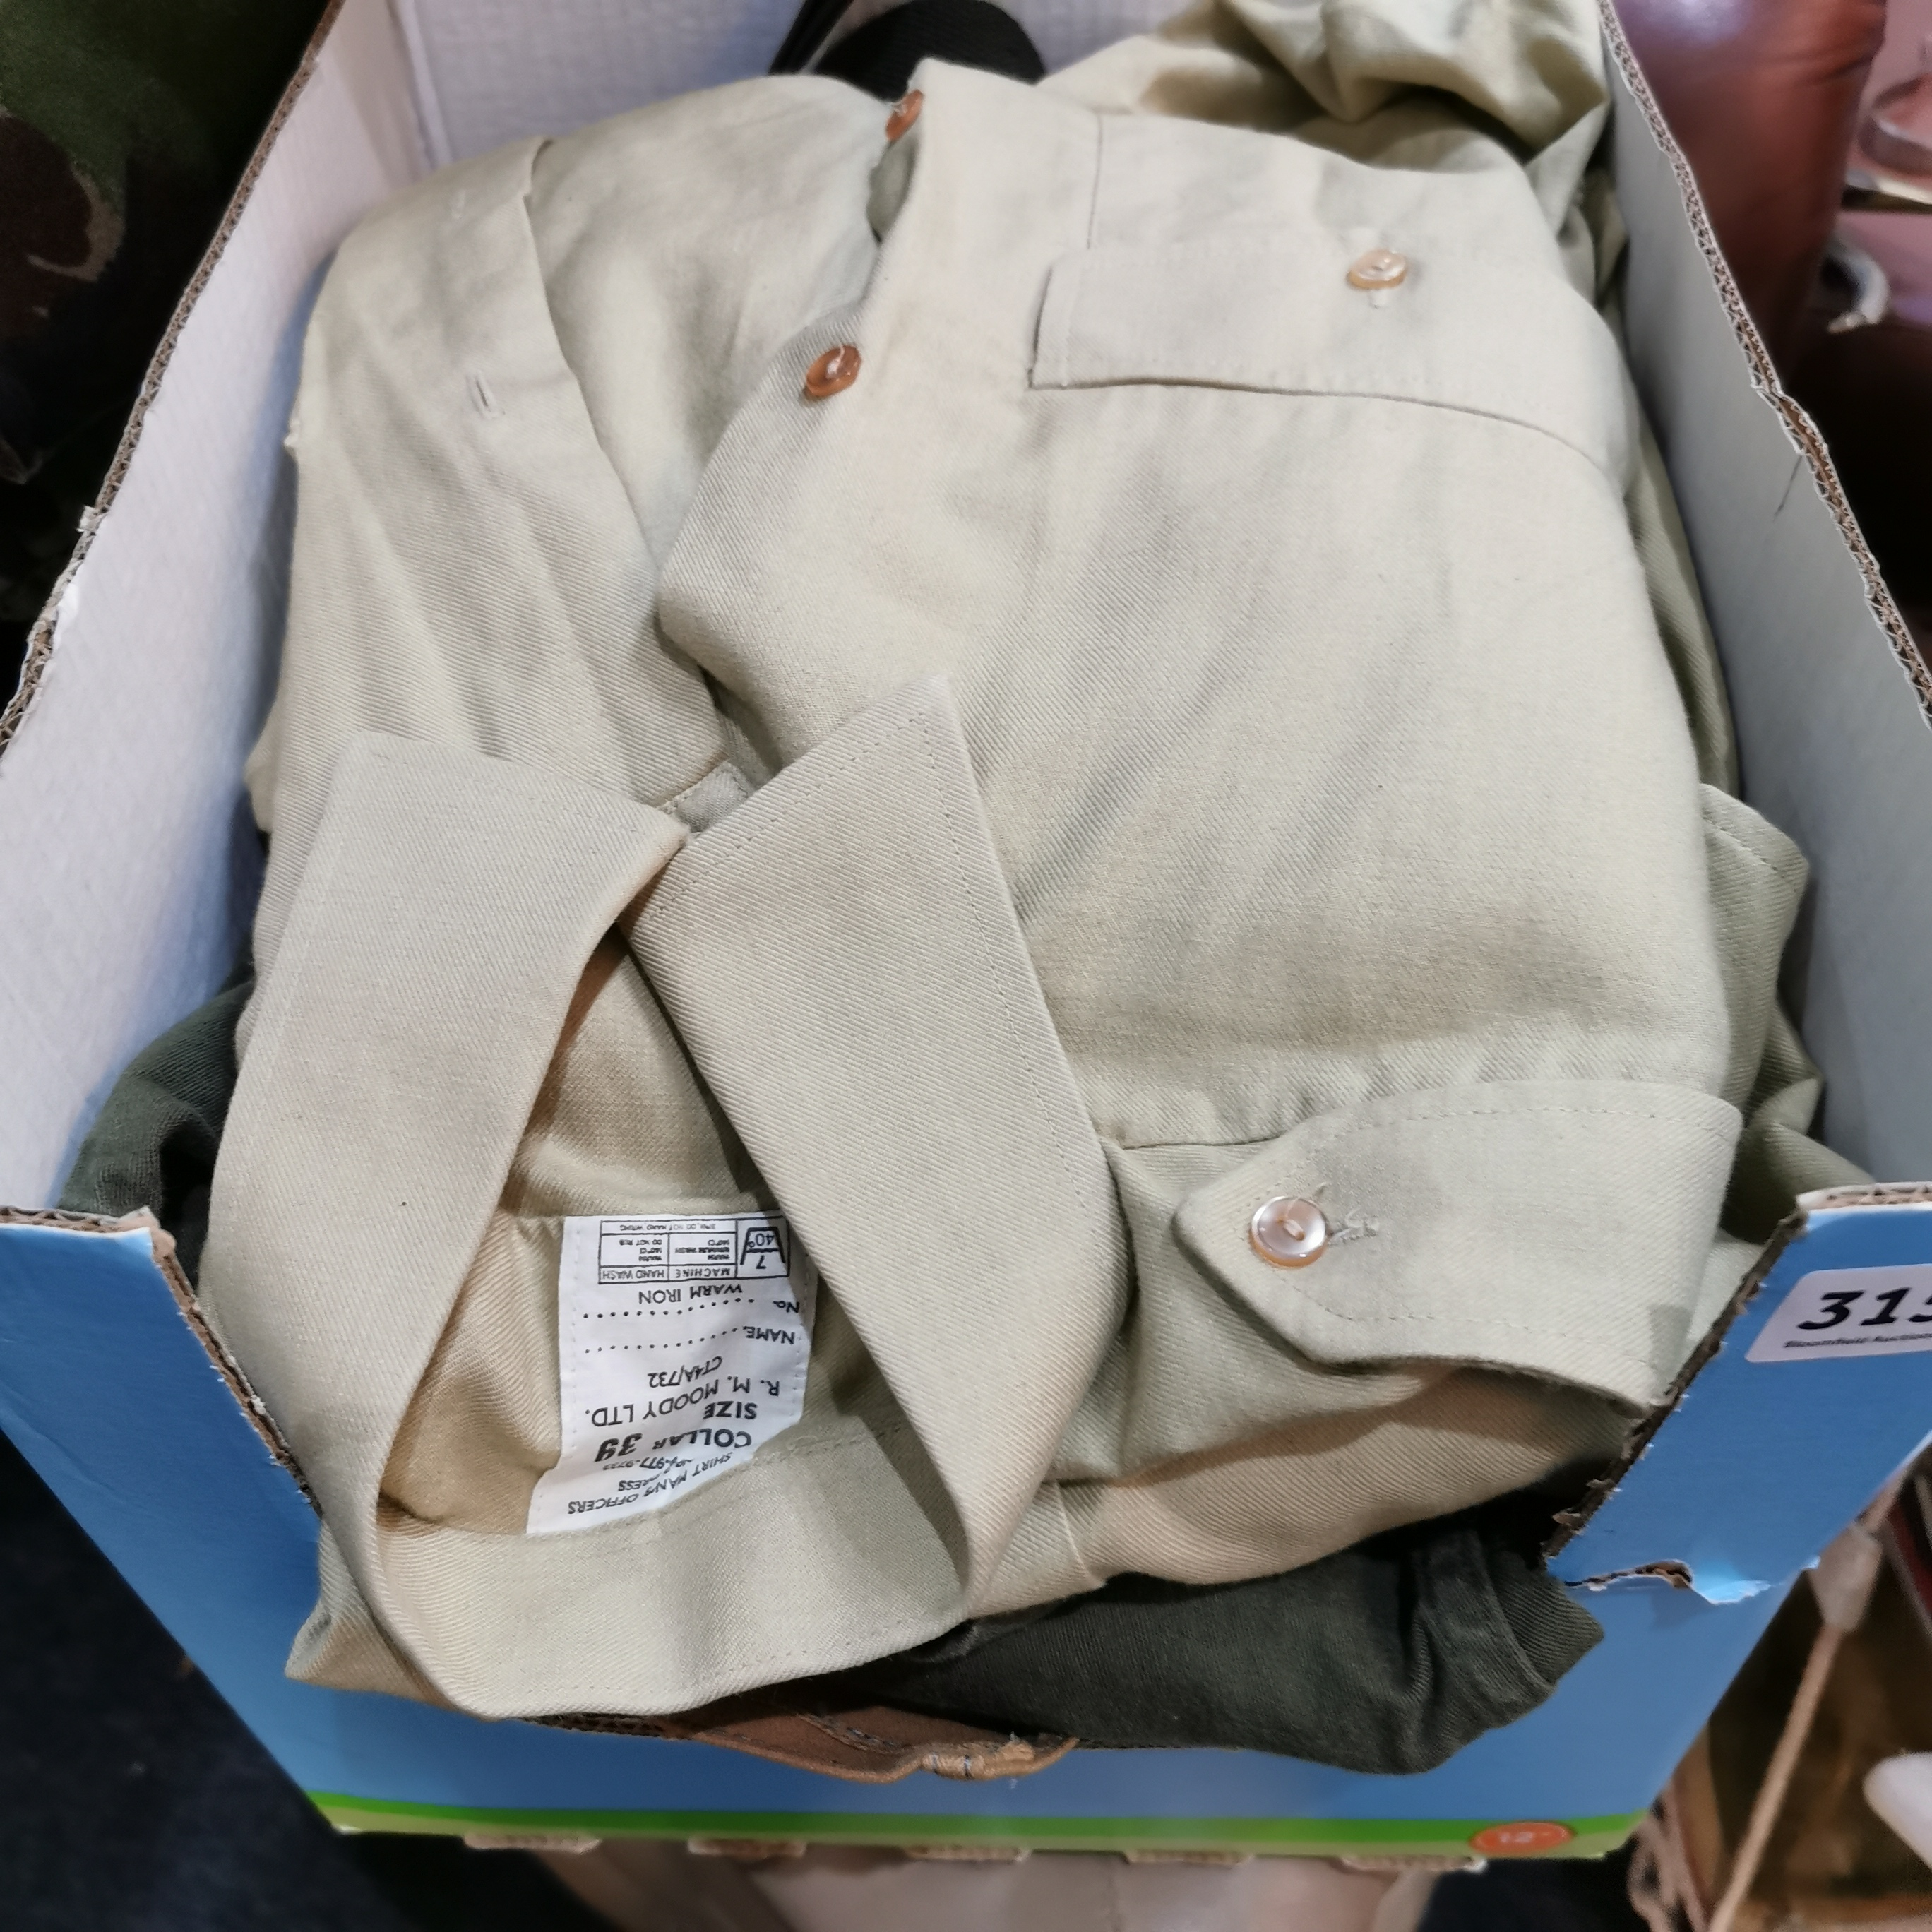 Lot 315 - BOX LOT OF MILITARY POUCHES, BELTS & CLOTHING